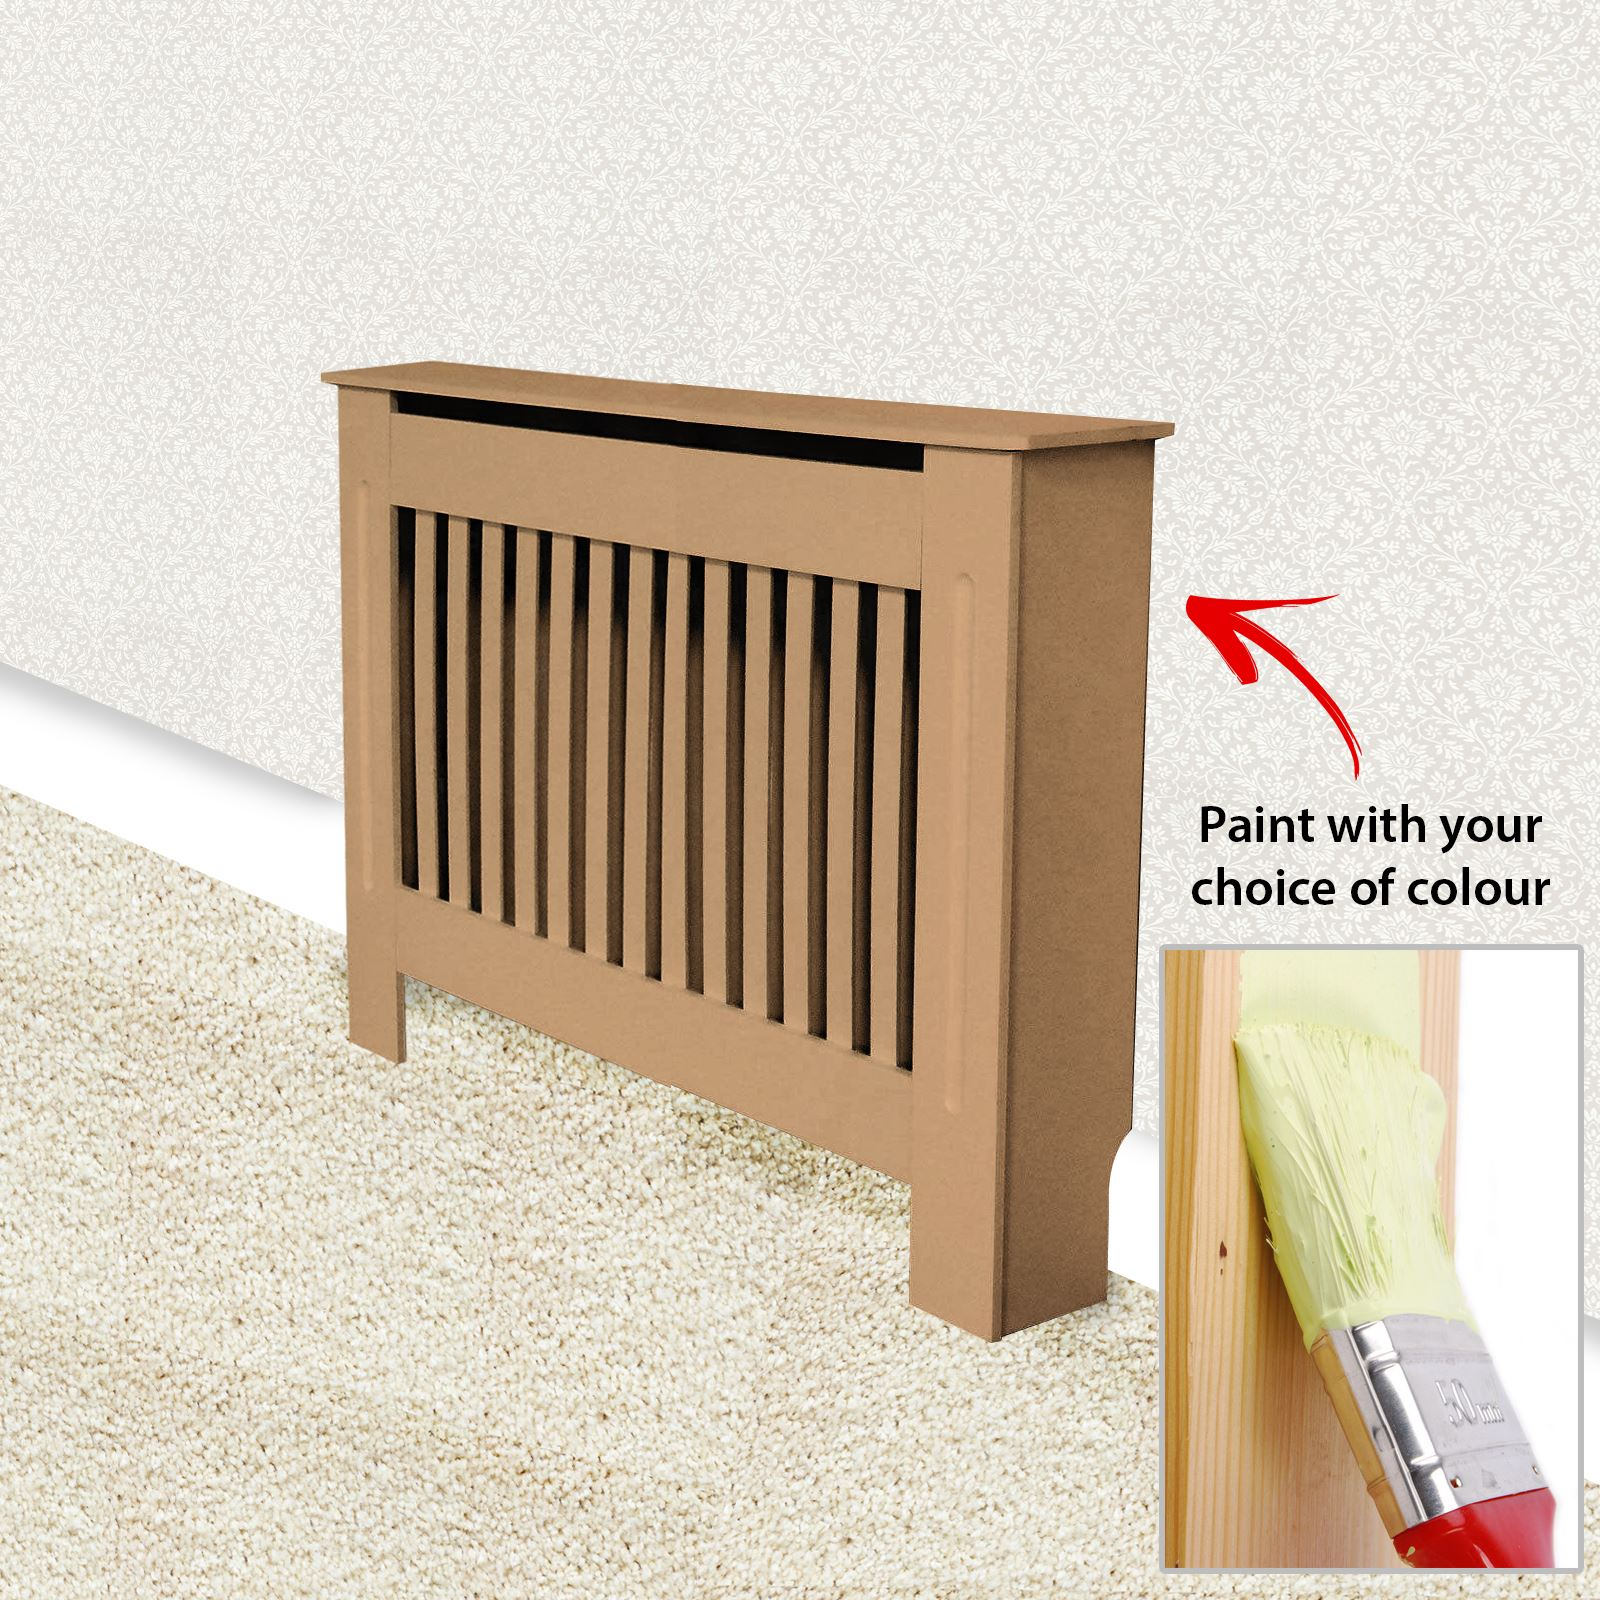 Traditional-Radiator-Cover-Cabinet-Vertical-Slatted-MDF-Wood-Small-Large-Unit thumbnail 14